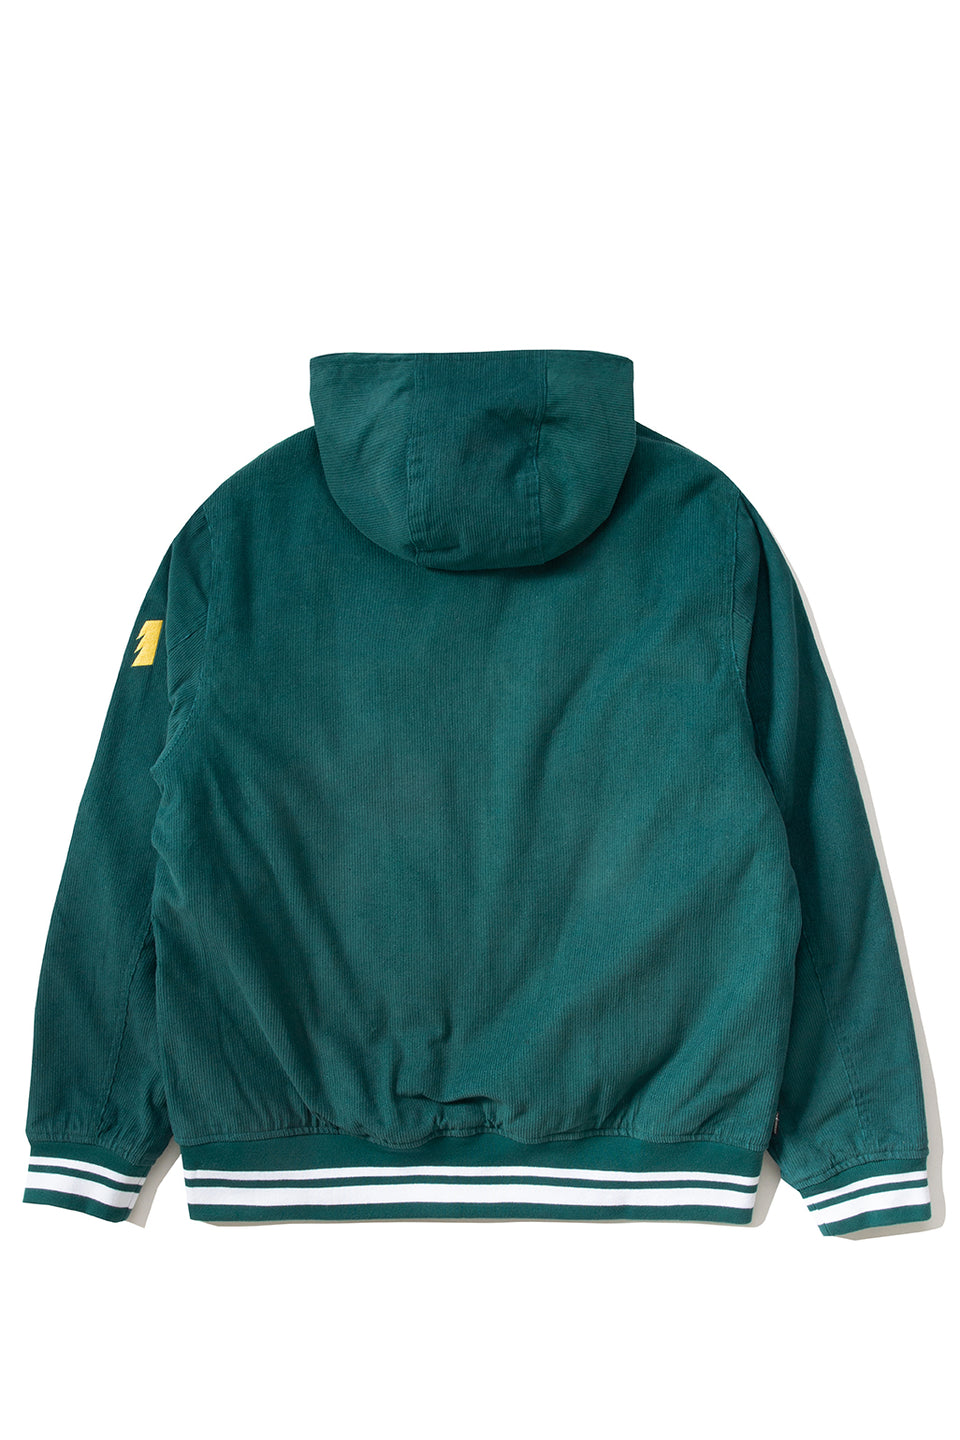 Syndicate Corduroy Jacket